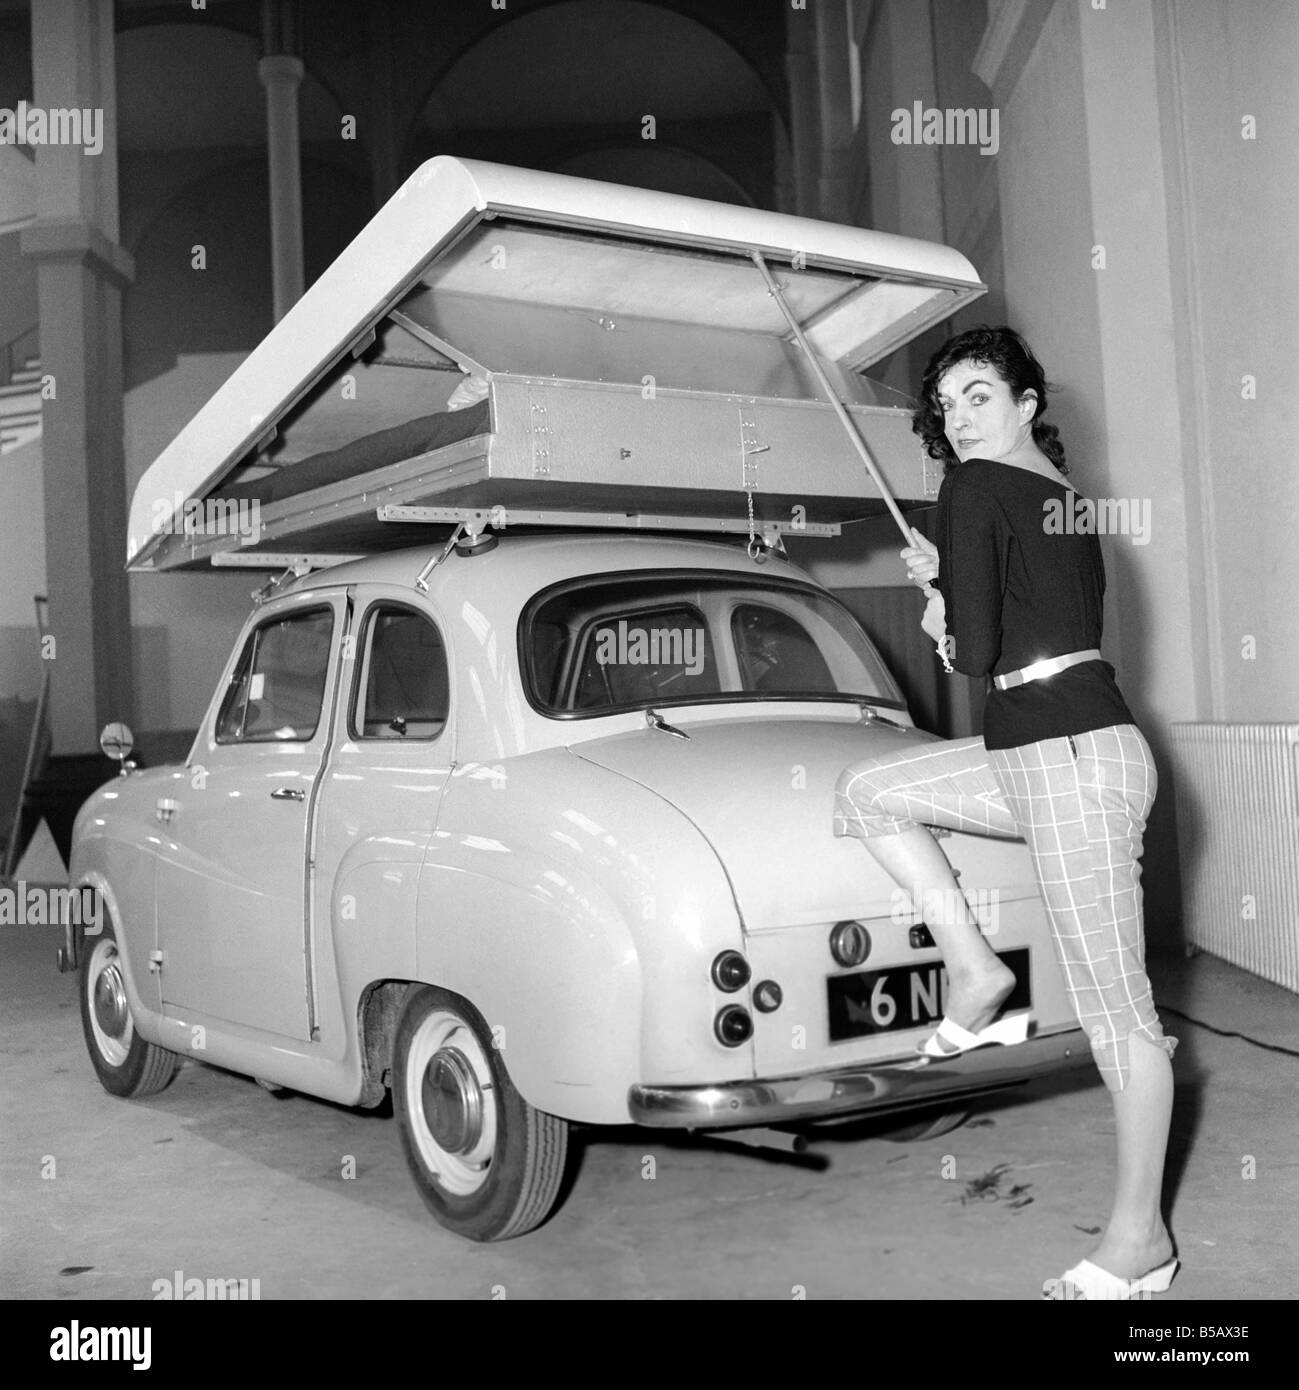 Inventions: Car Roof Tent: A new revolutionary camping invention 'The Roof Tent' seen here on top of a Austin - Stock Image